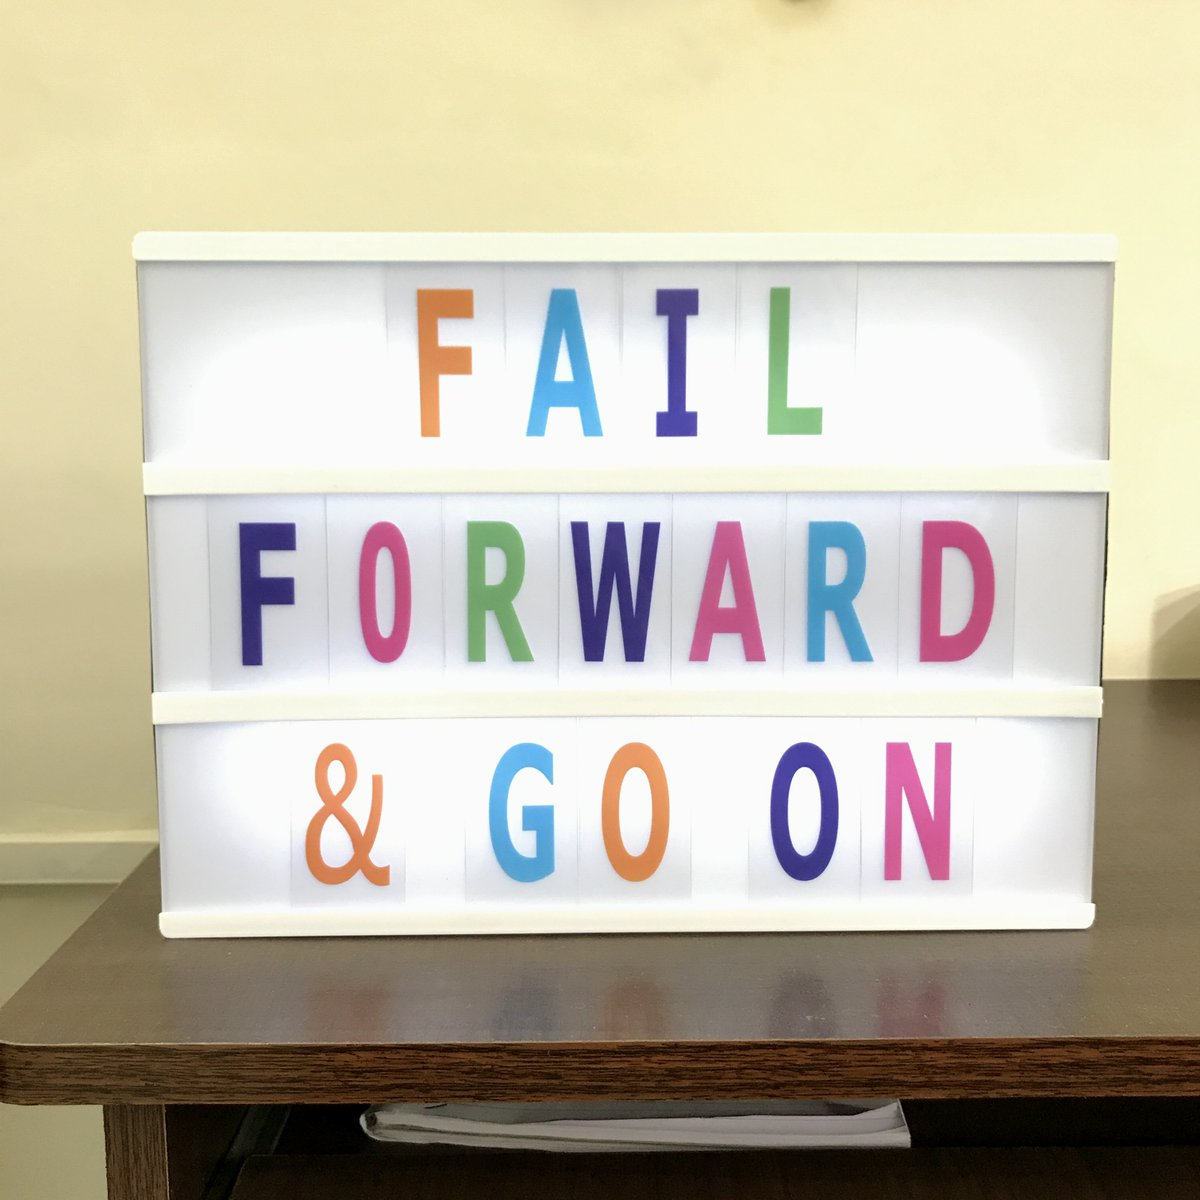 Don't be afraid to fail. Fail forward and kep going. #motivational #inspirational #quotes https://t.co/BaoF69E3c7